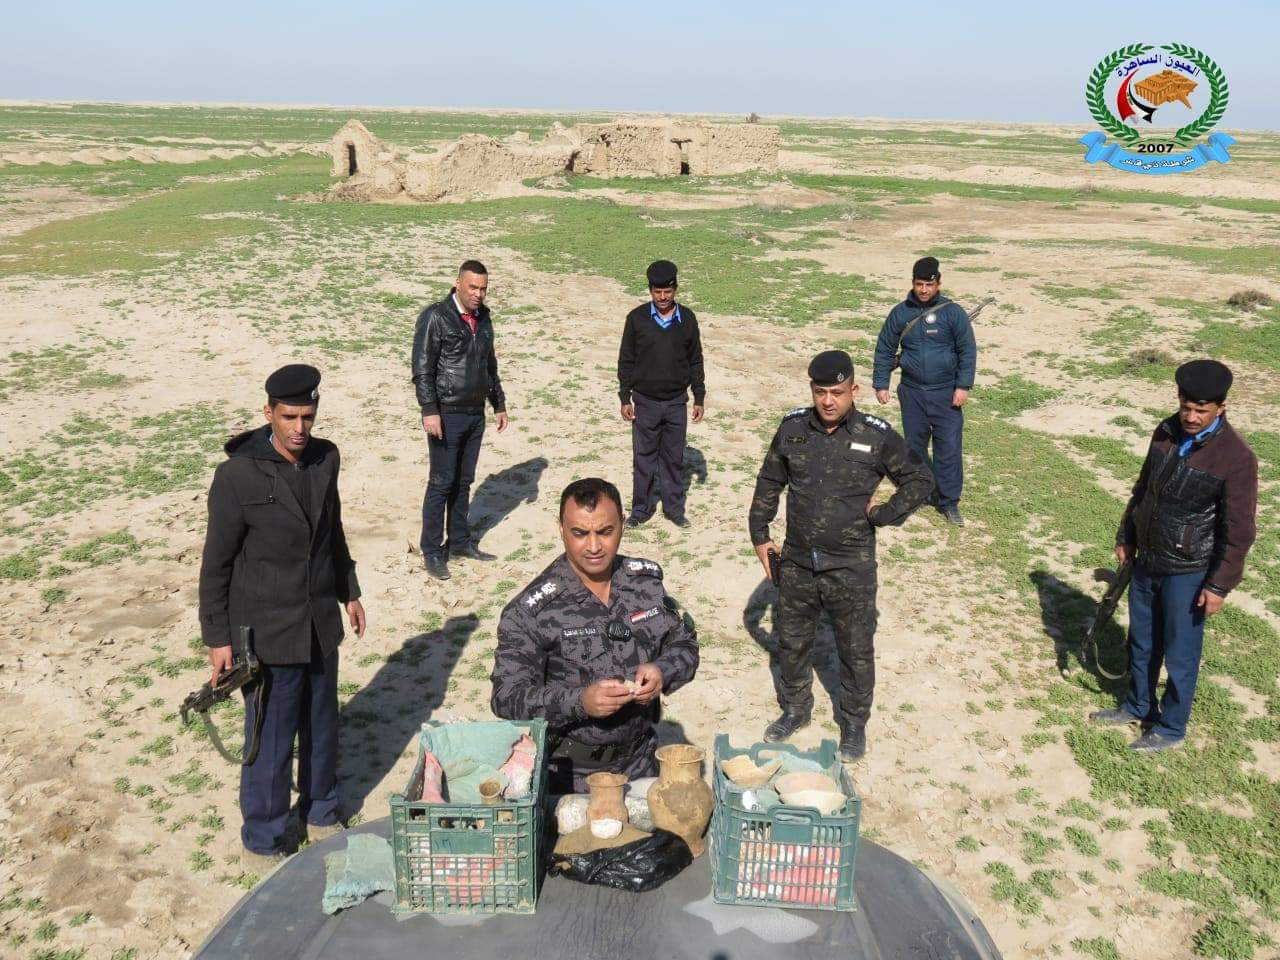 The archaeological police of the State Board of Antiquities and Heritage in Baghdad seize antiquities, as featured in Iraqi media